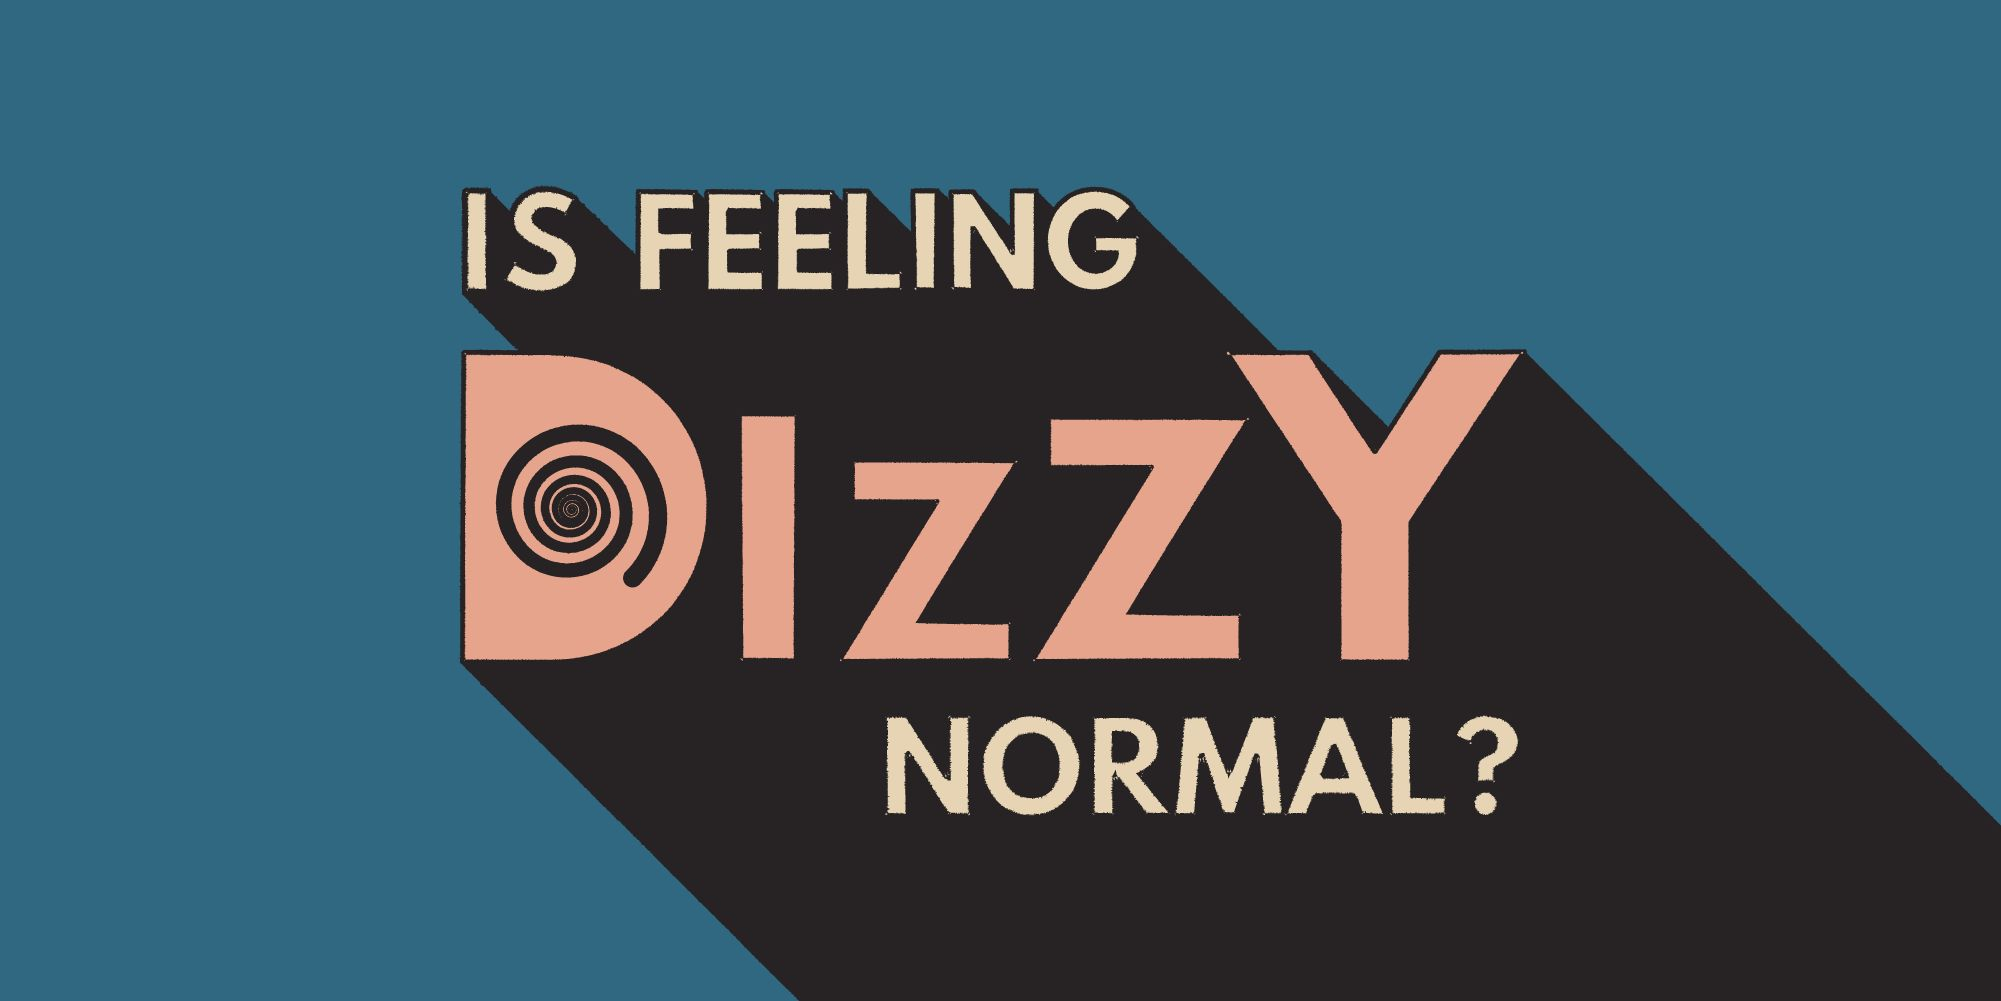 Is feeling dizzy normal?